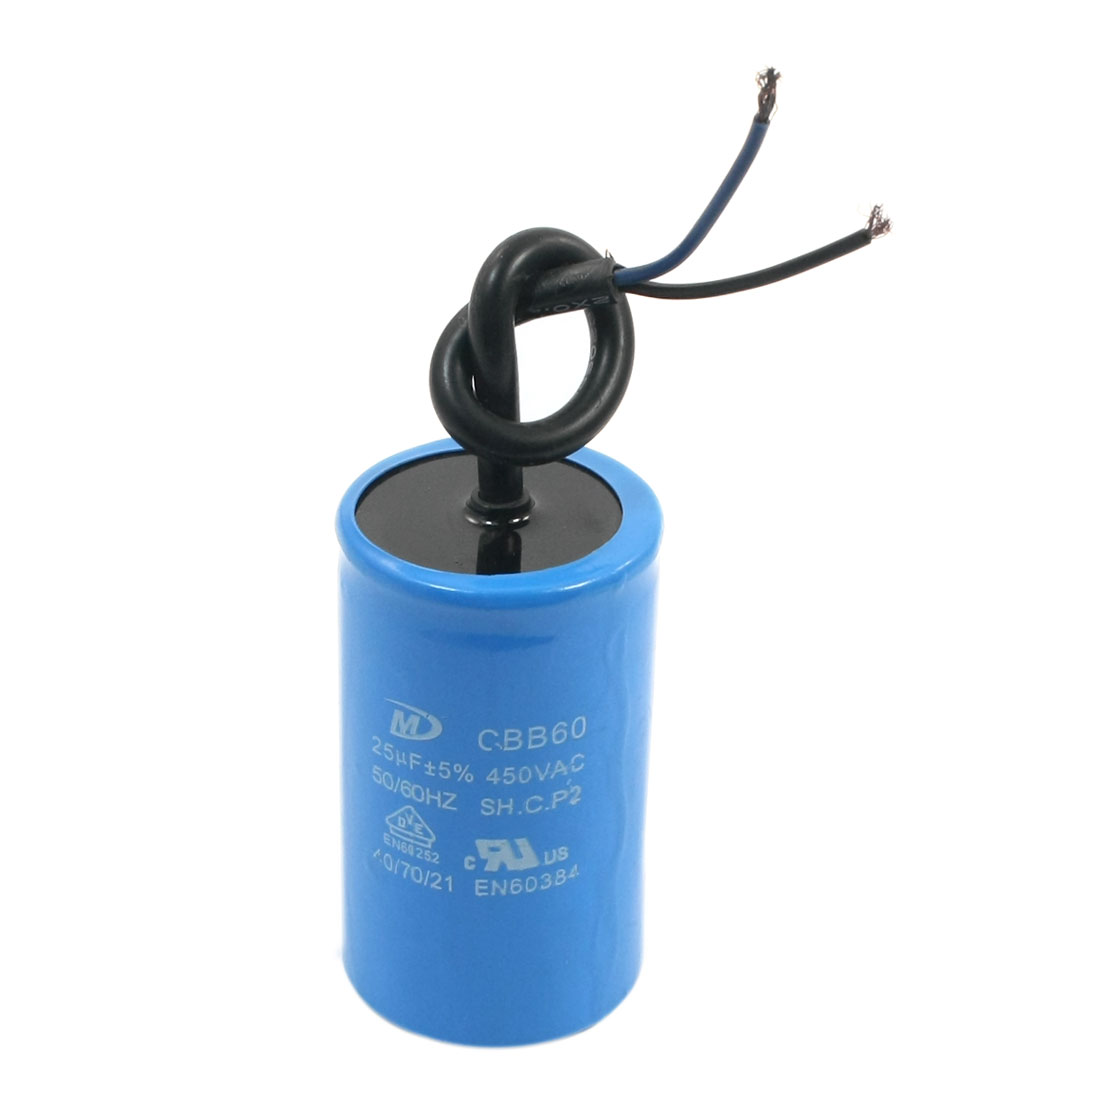 AC 450V CBB60 25UF 5% 50/60Hz Cylinder Shape Wired Polypropylene Film Washing Machine Washer Electrolytic Motor Capacitor Blue